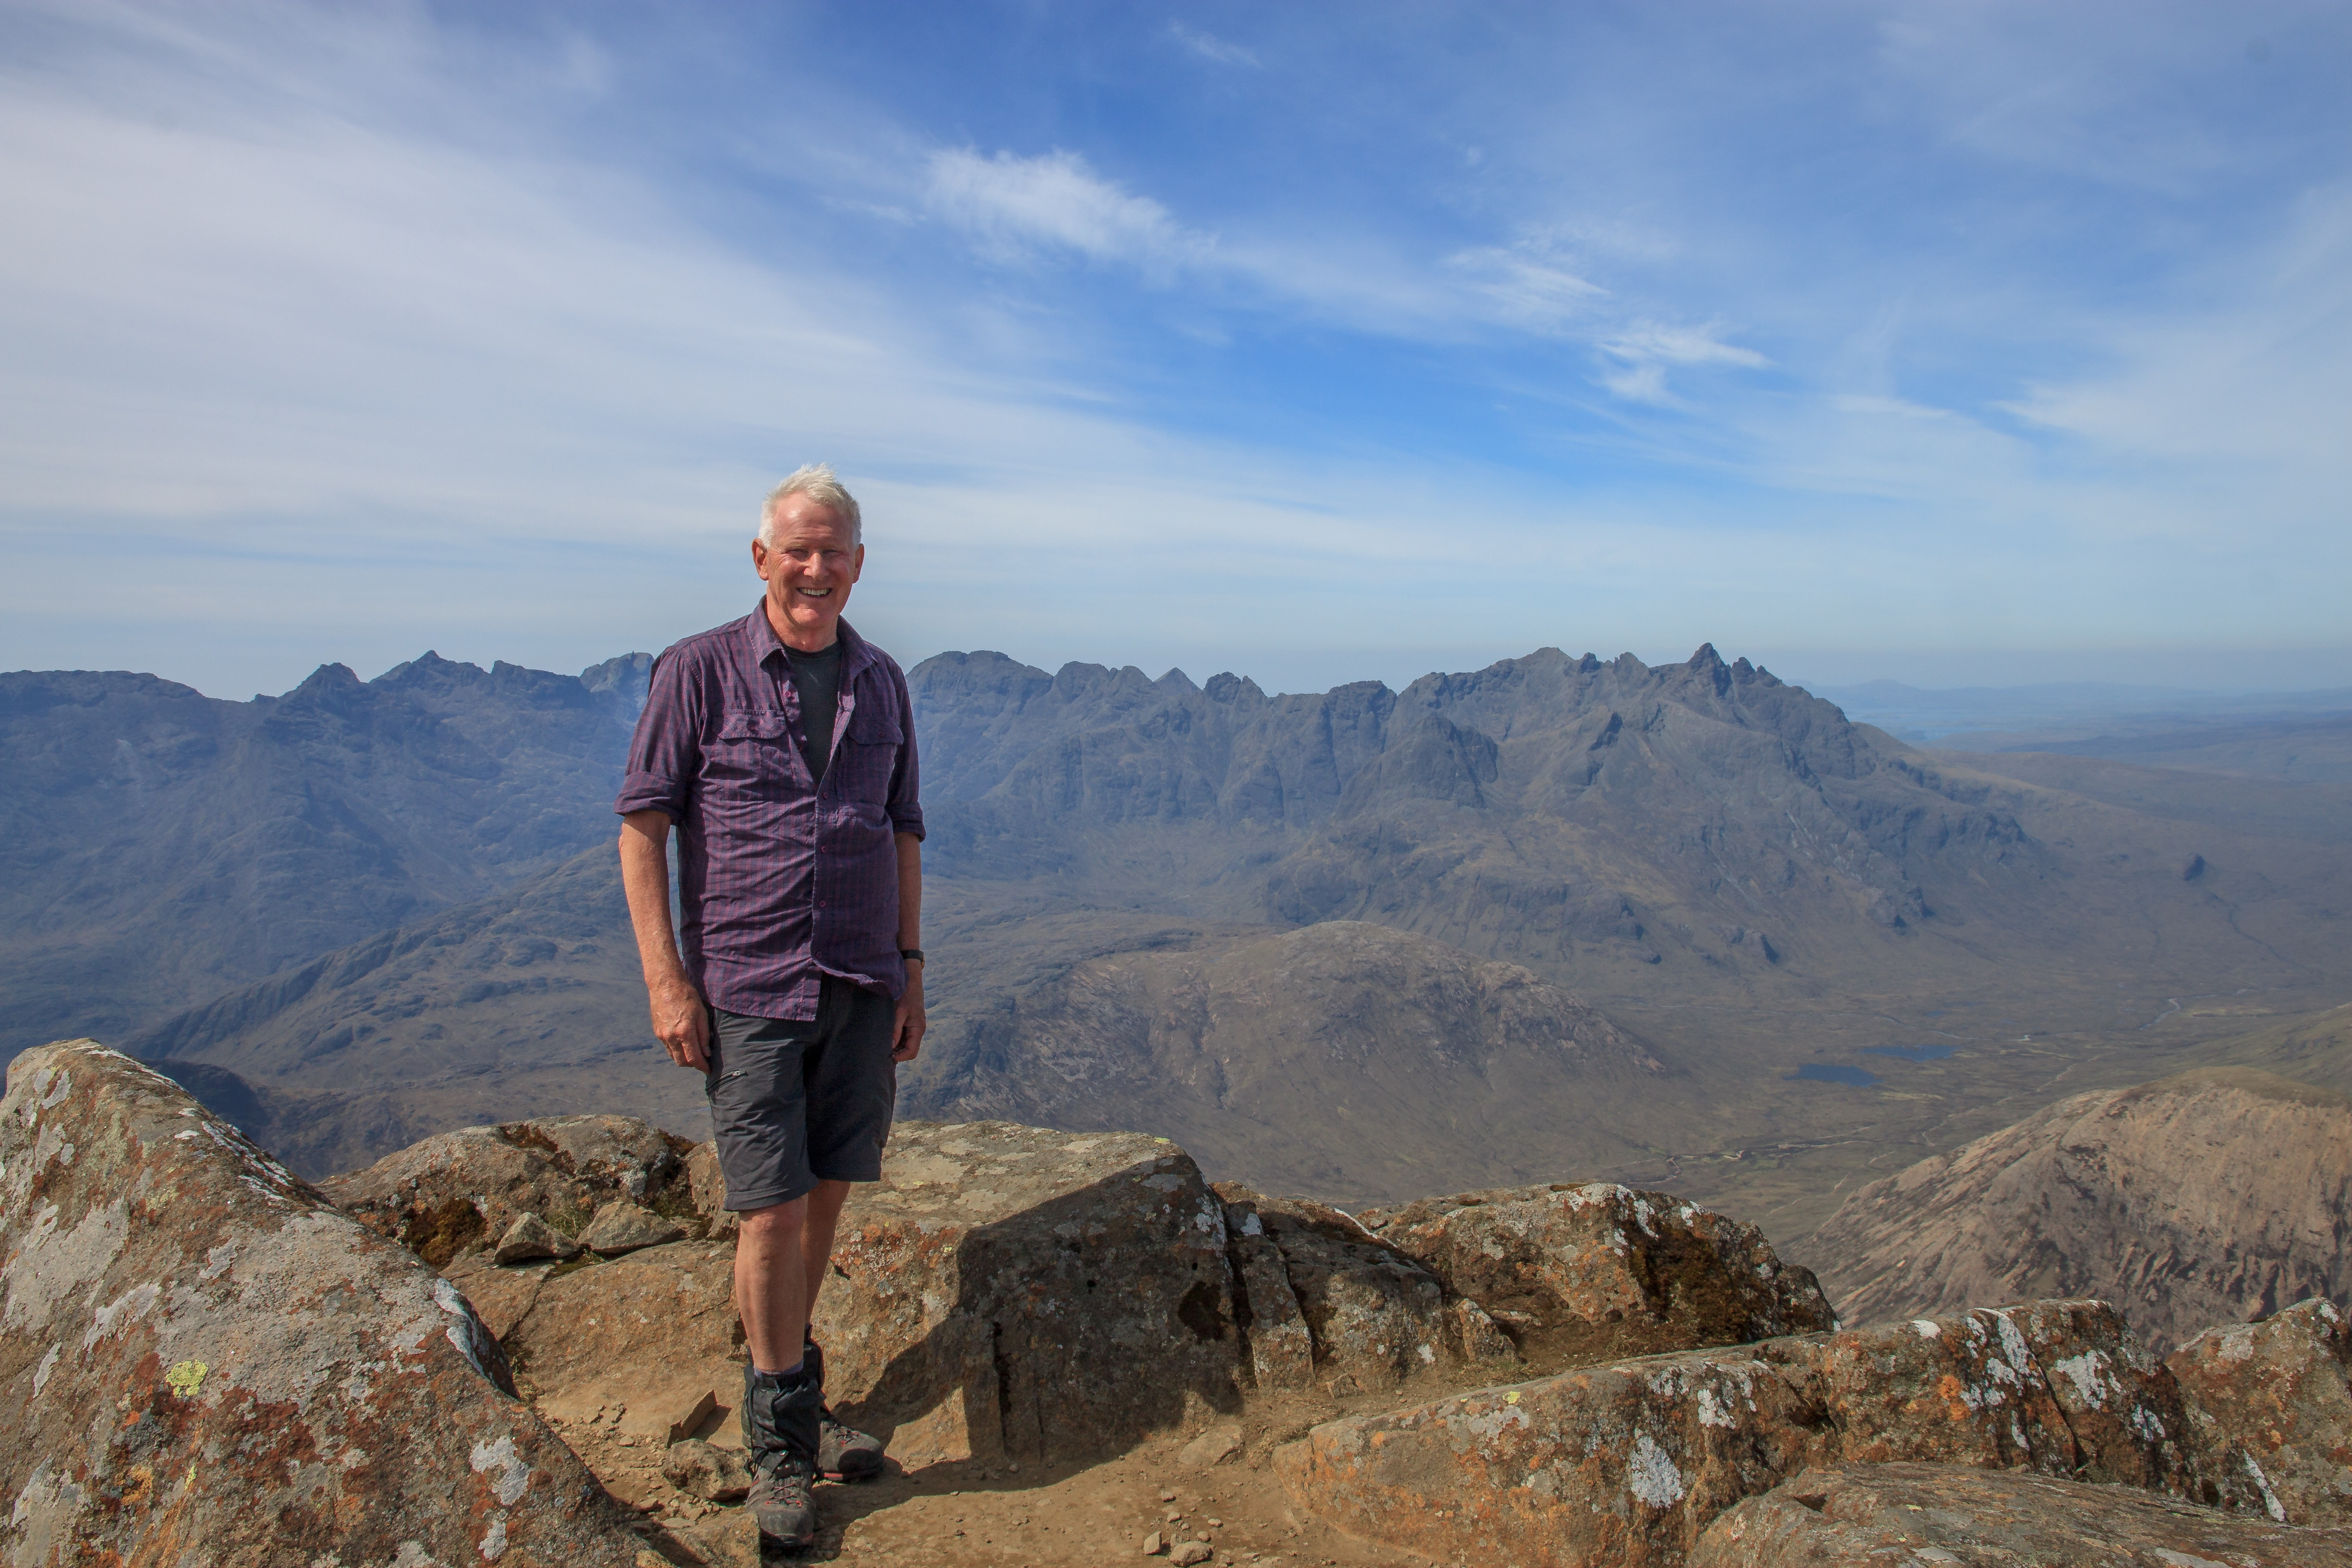 Me on the summit of Bla Bheinn with the Cuillin Ridge beyond